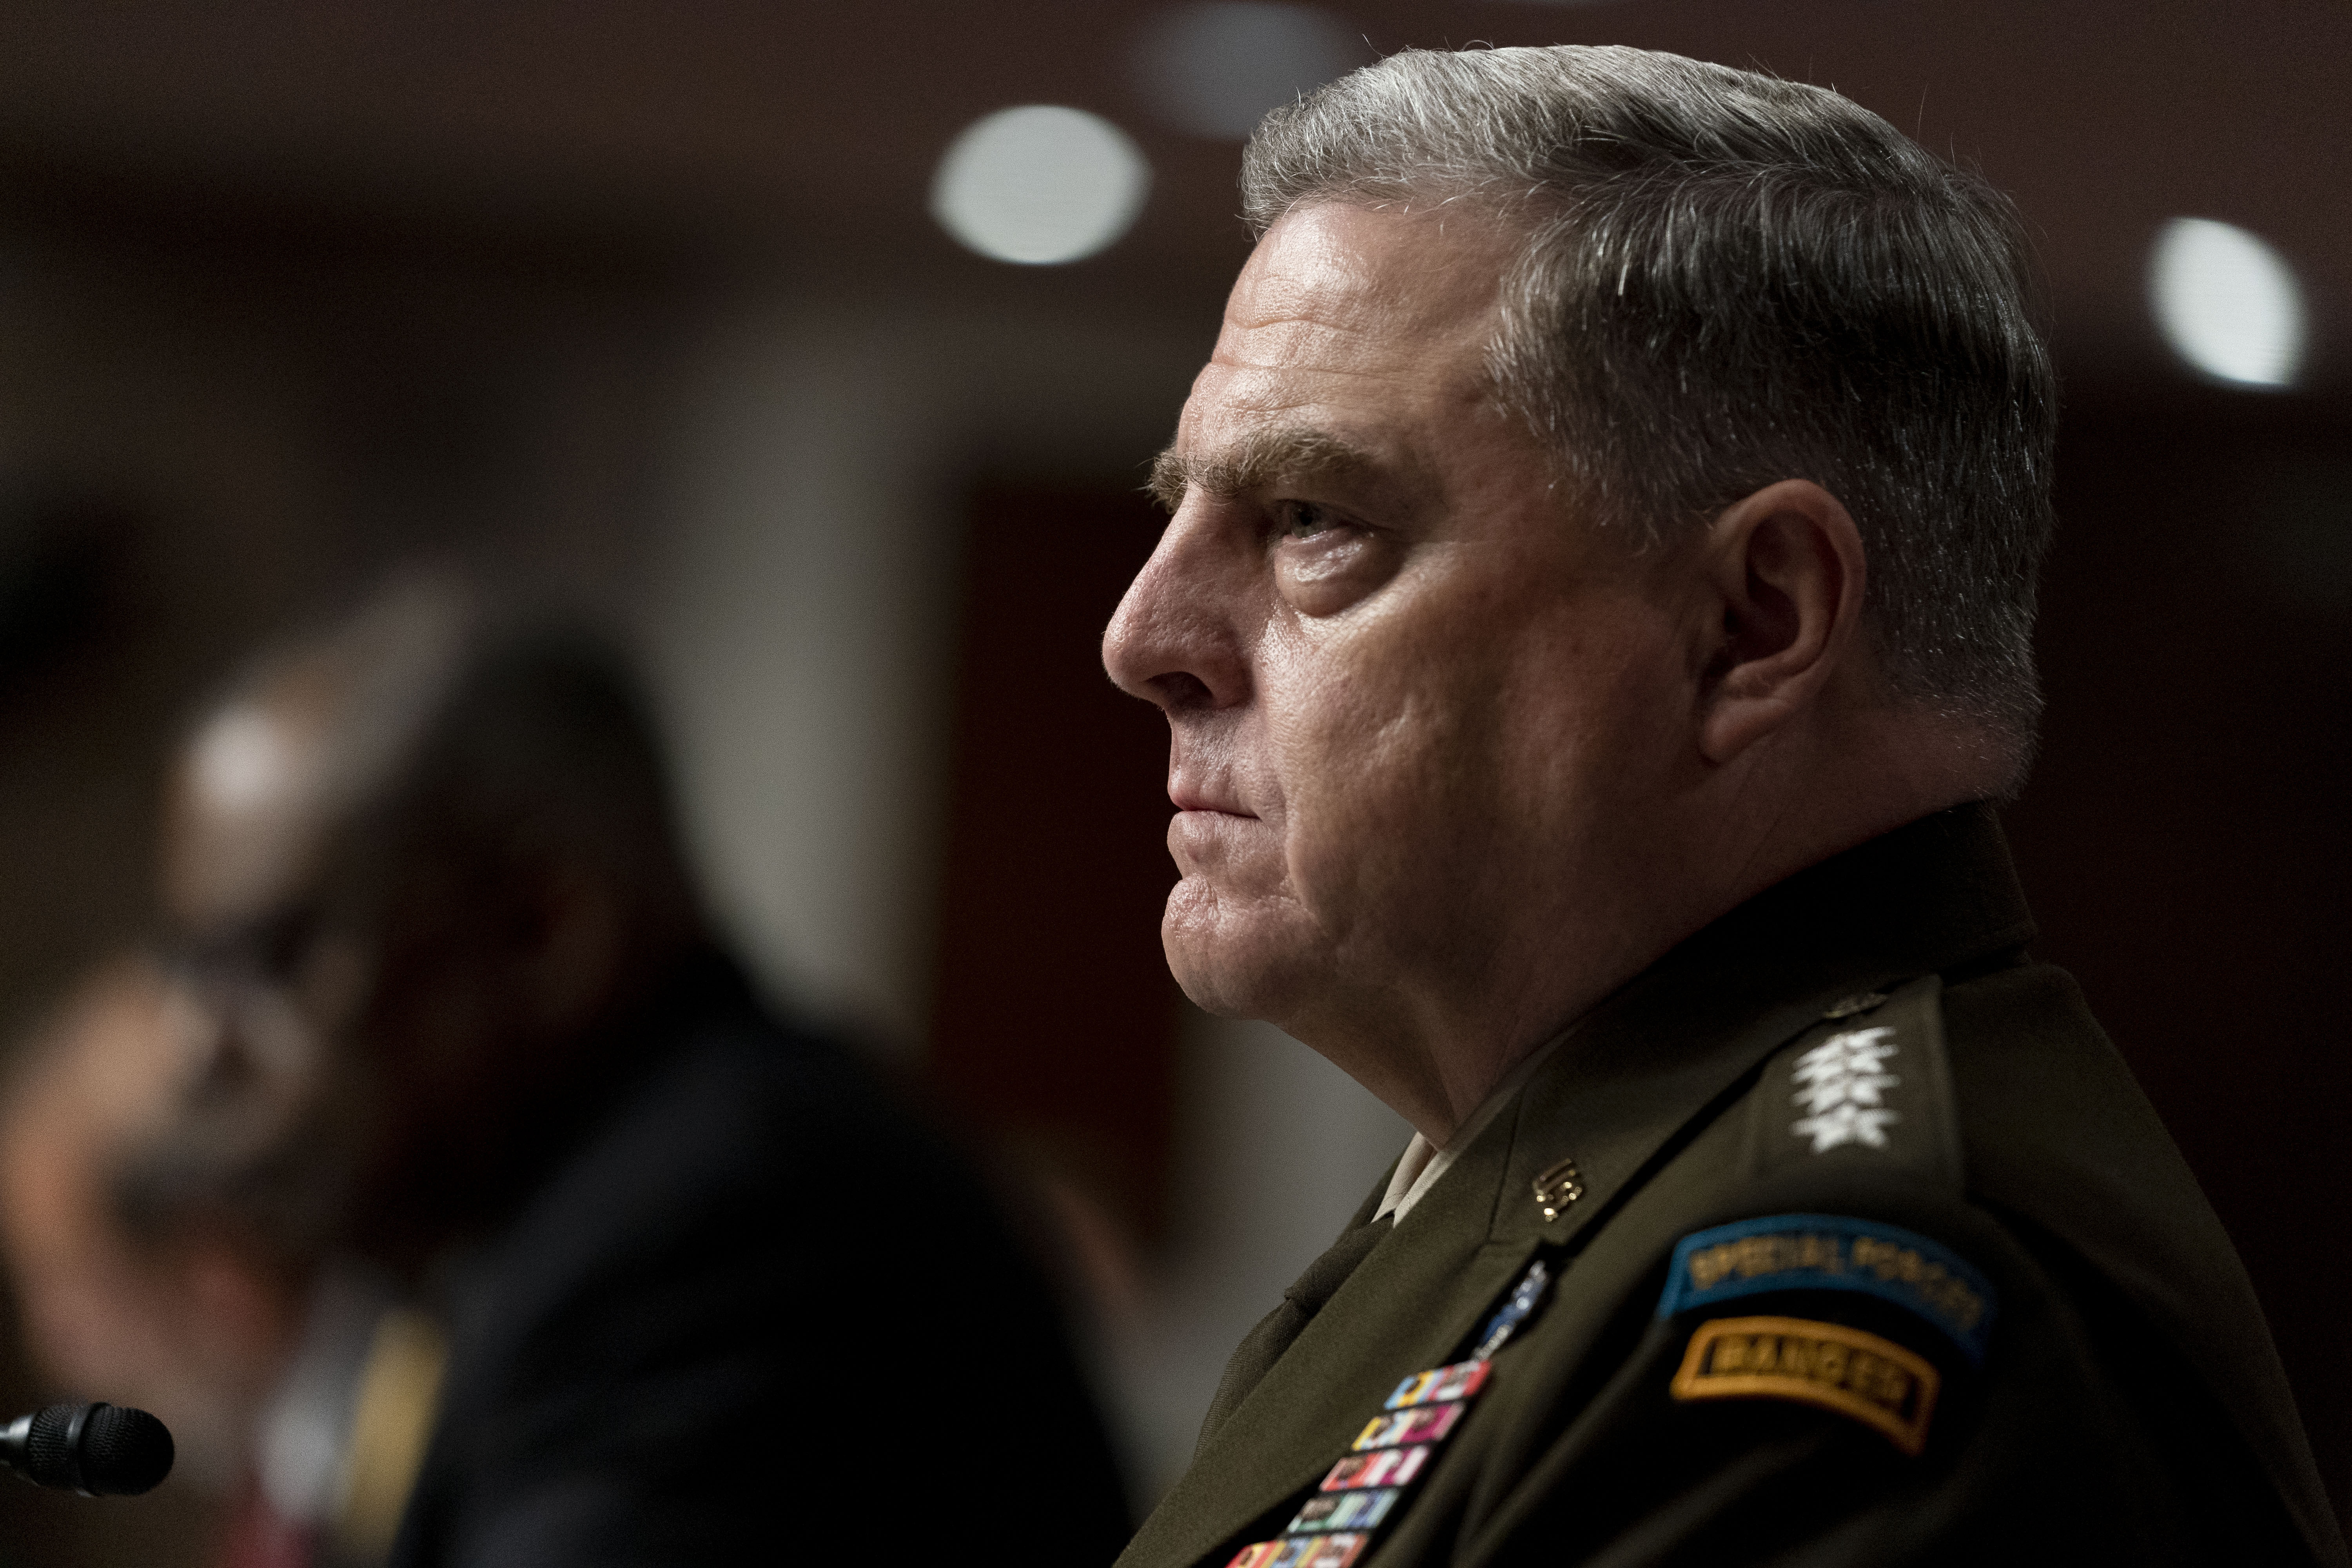 Top U.S. general defends freedom, democracy, 'critical race theory' against the right